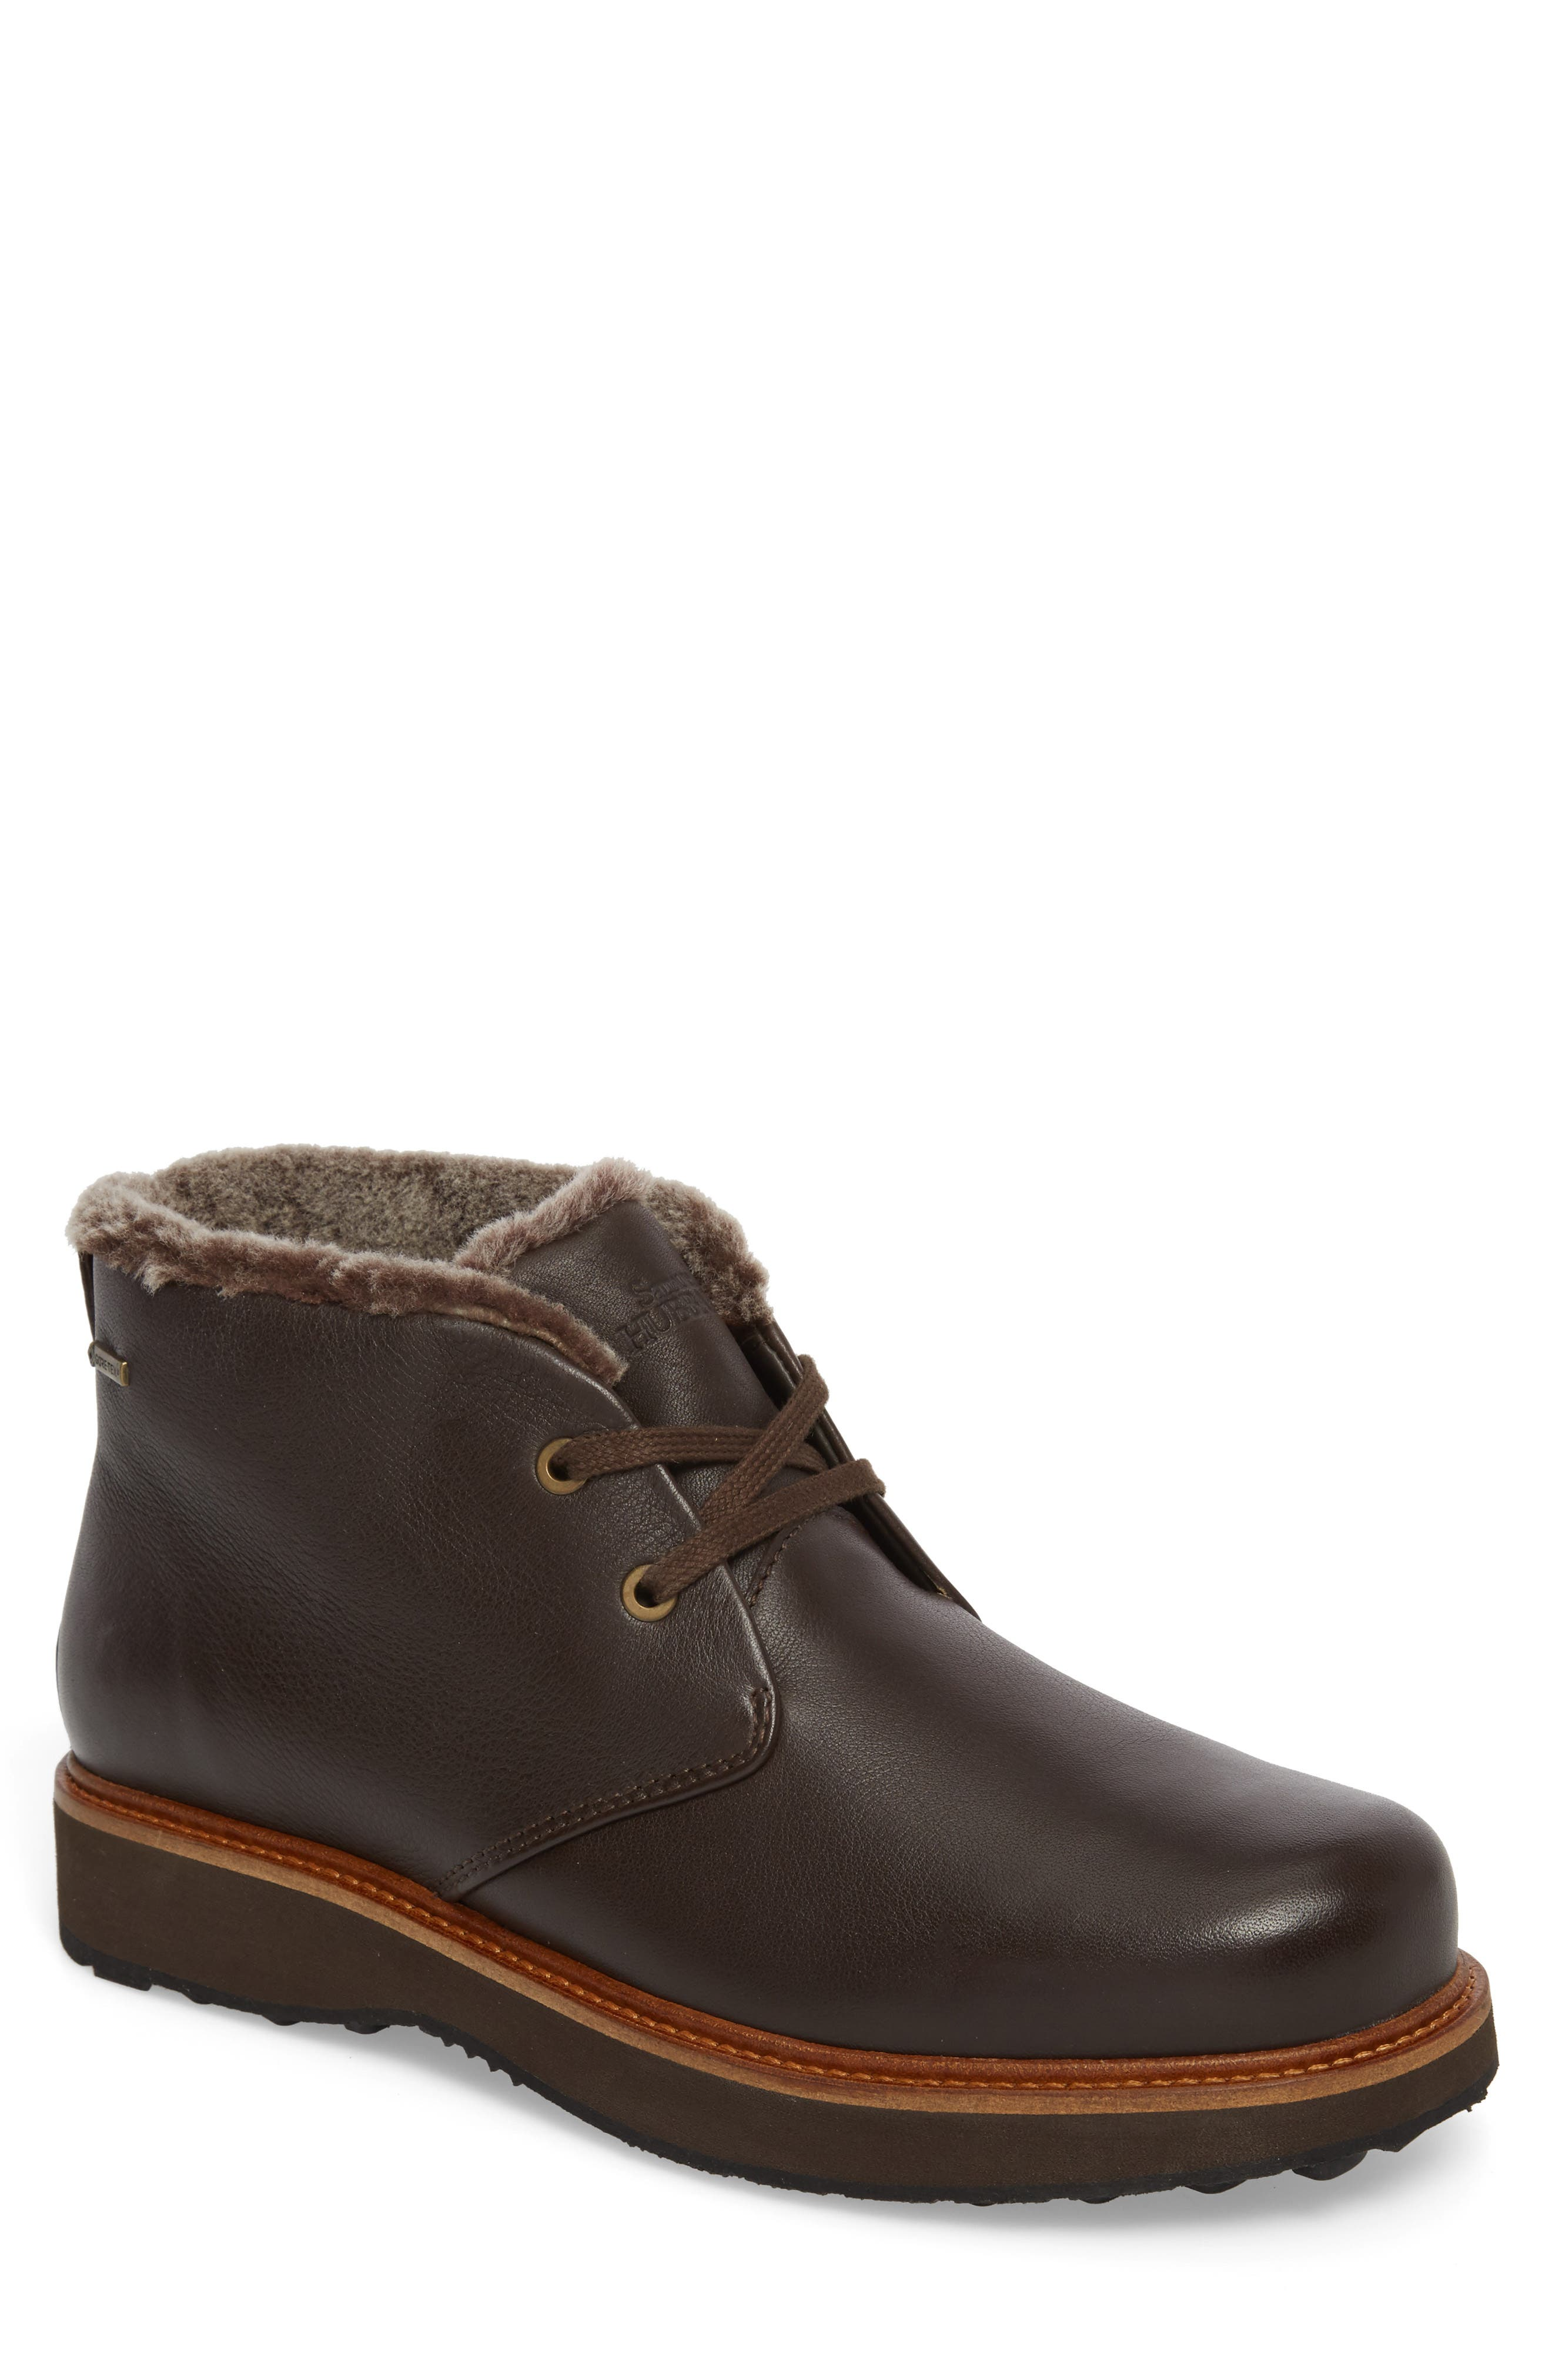 Winter's Day Waterproof Gore-Tex<sup>®</sup> Genuine Shearling Lined Chukka Boot,                             Main thumbnail 1, color,                             Espresso Brown Leather